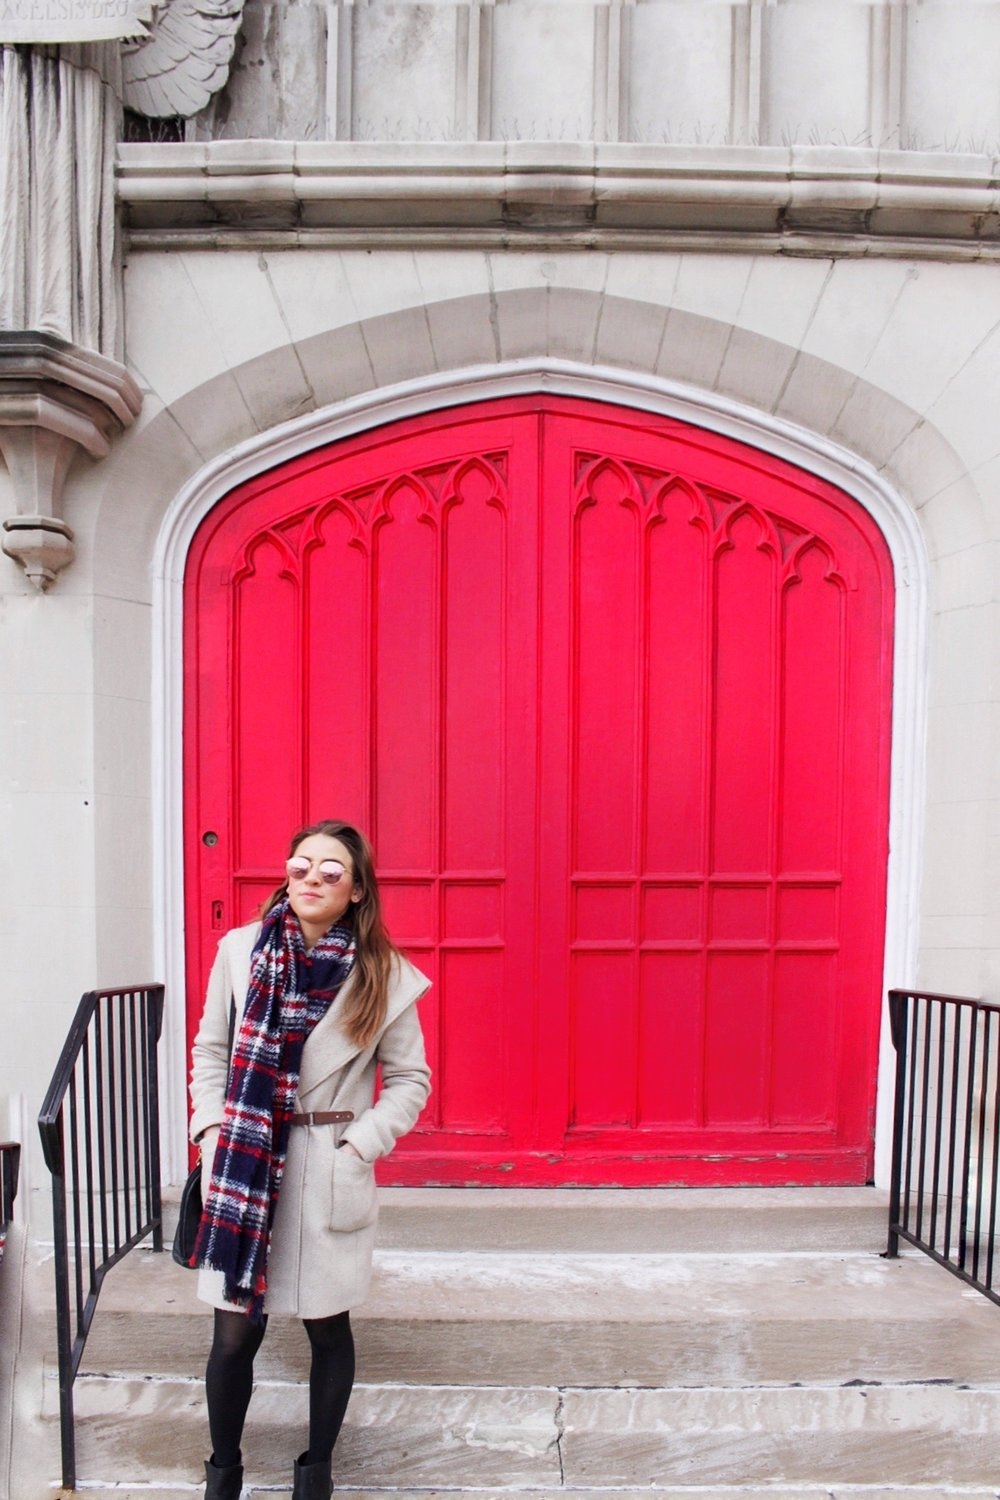 My sister, Vikki, posing in front of this vibrant red door of a church in Philadelphia. We walked by this on our way to Dilworth Park from her city apartment.